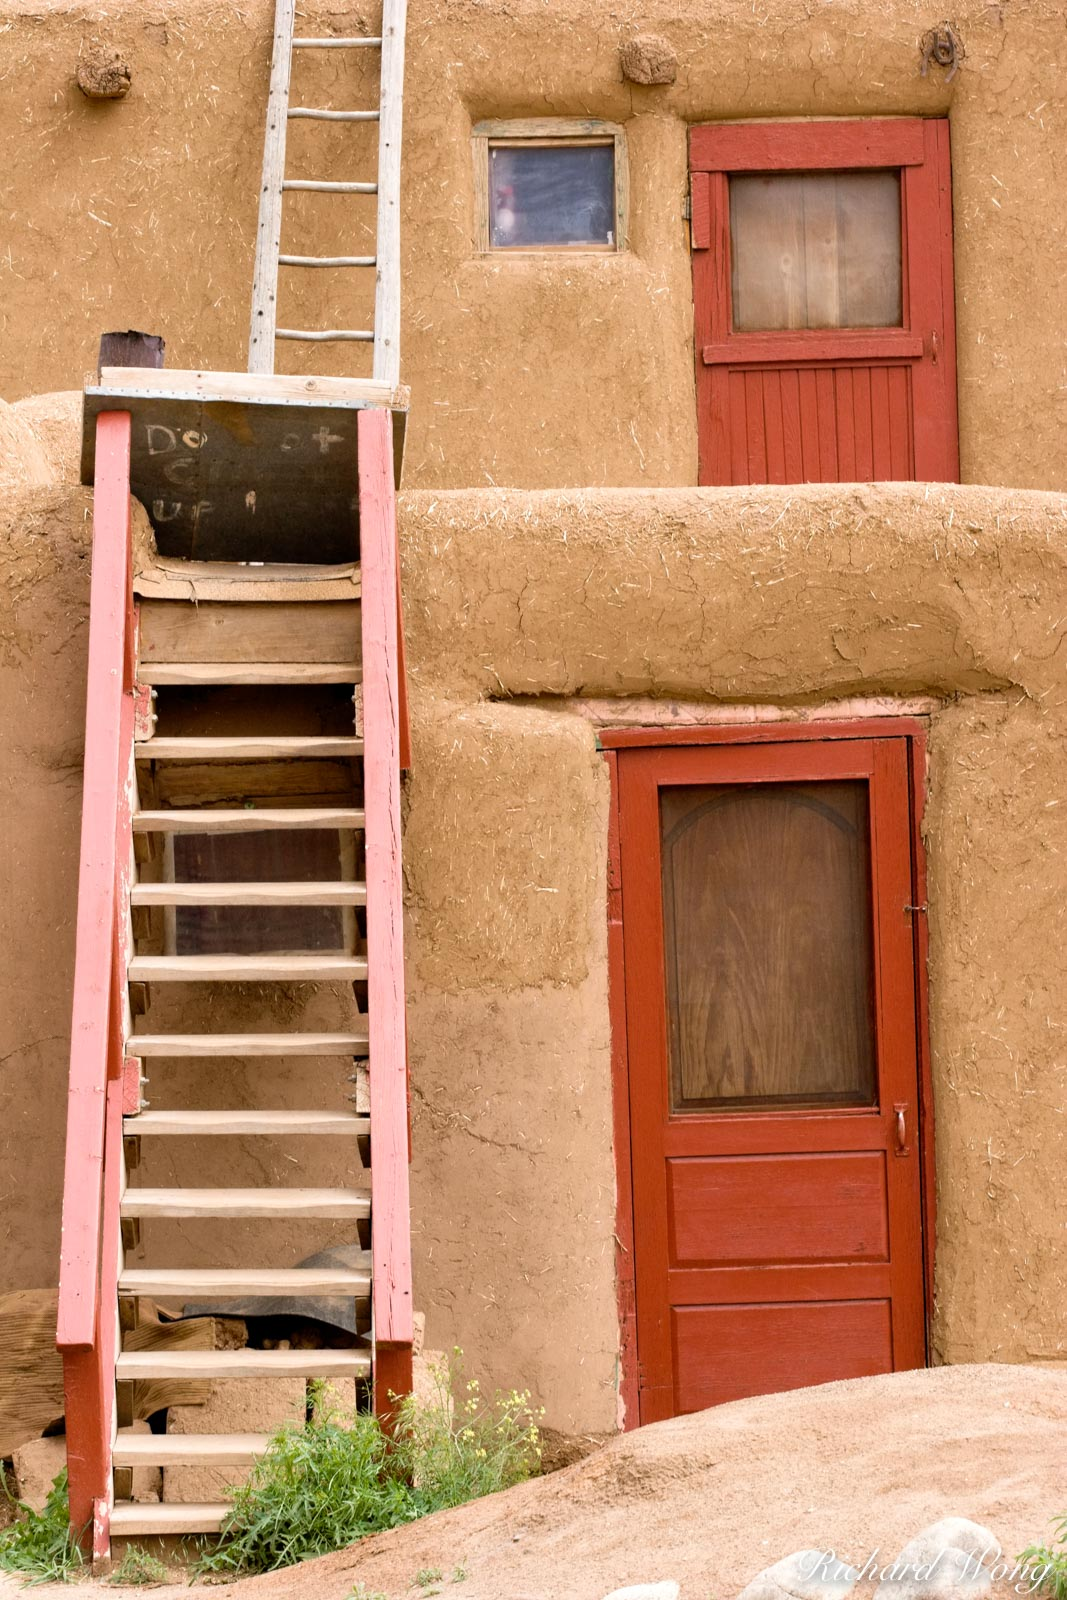 New Mexico, adobe, architecture, door, historic landmark, history, home, homes, indian reservation, ladder, ladders, landmarks, multi-story, native american, old, red doors, red willow indians, reside, photo